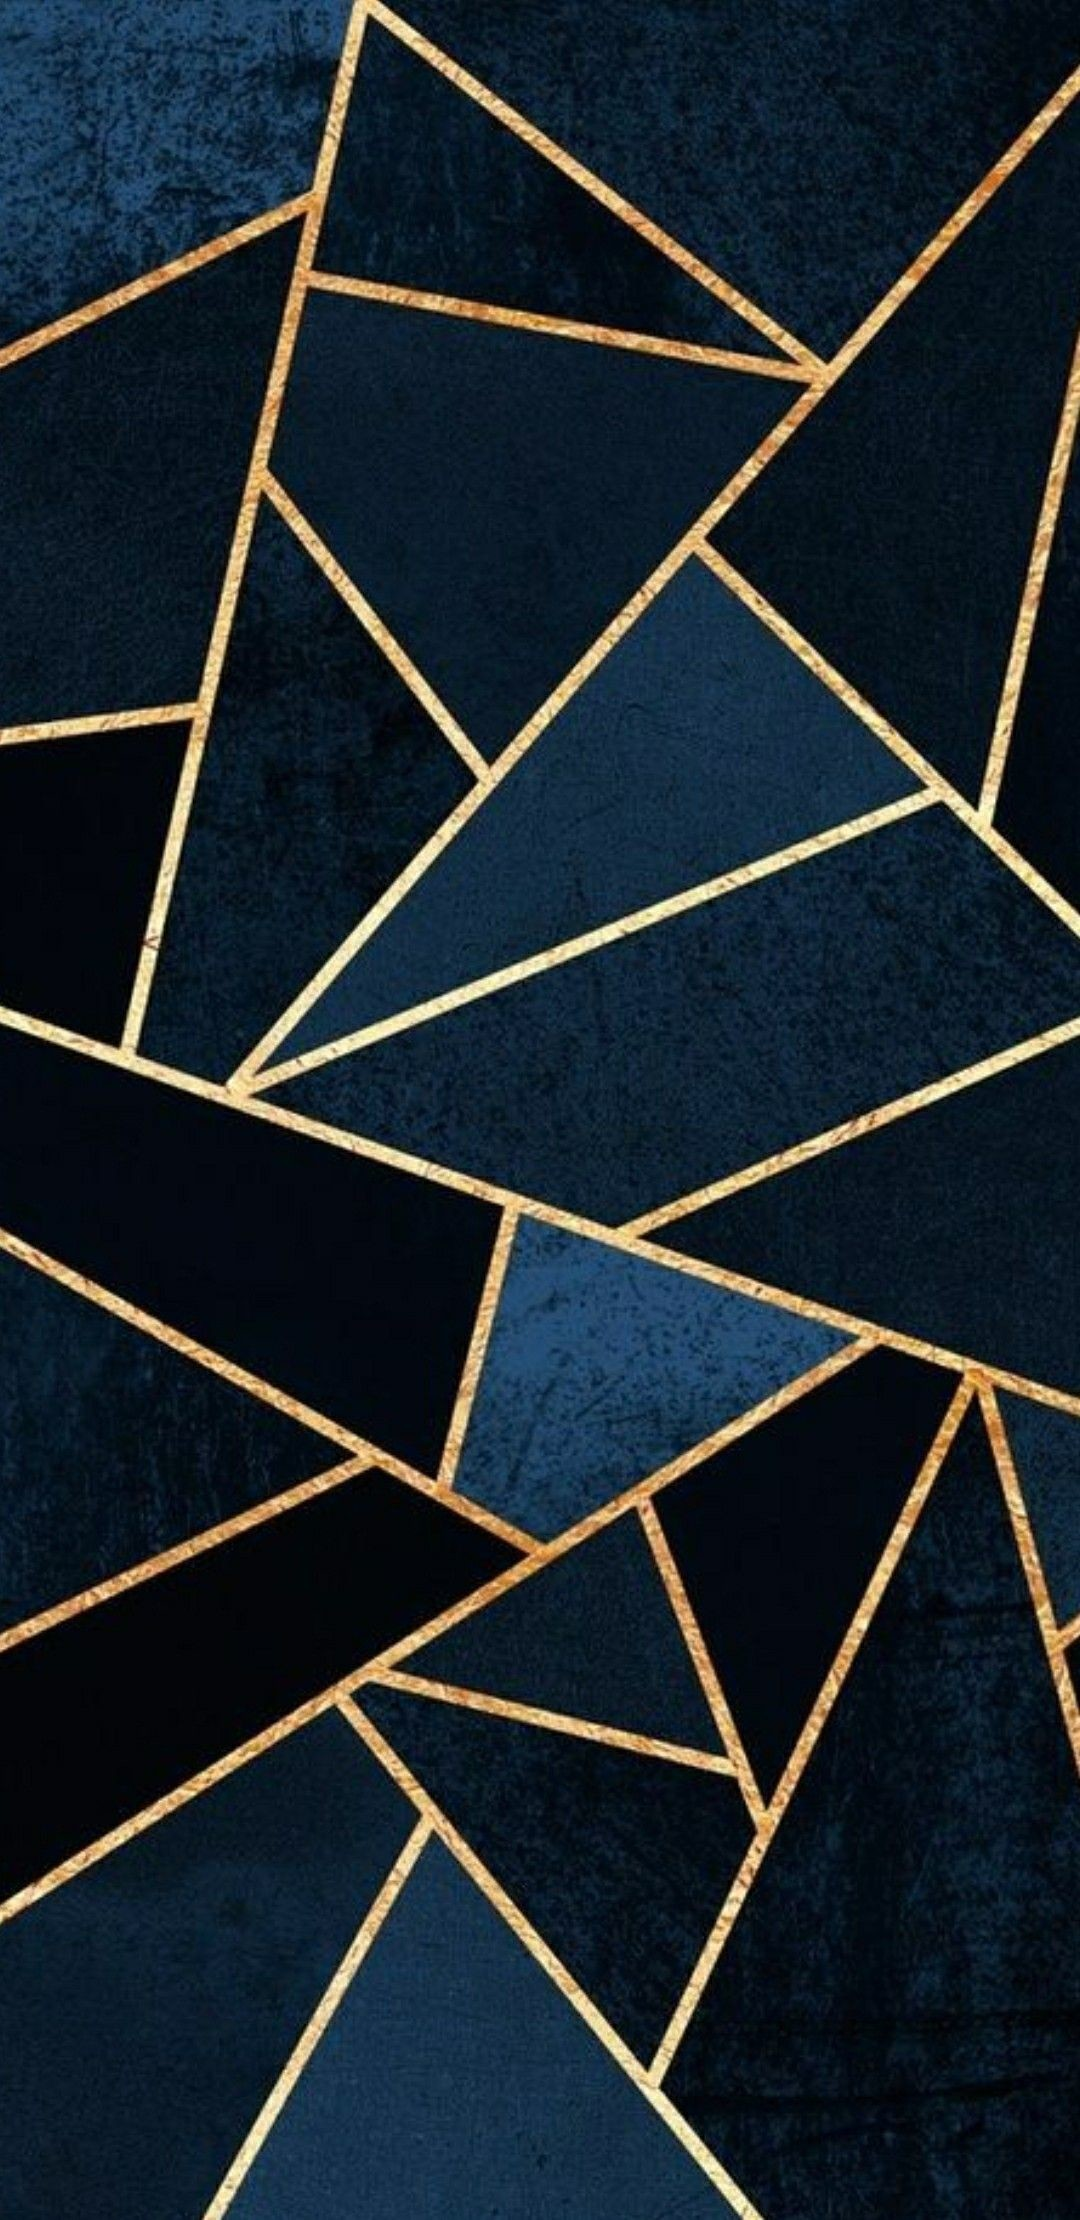 Res: 1080x2220, My favorite combo- dark blue with gold!